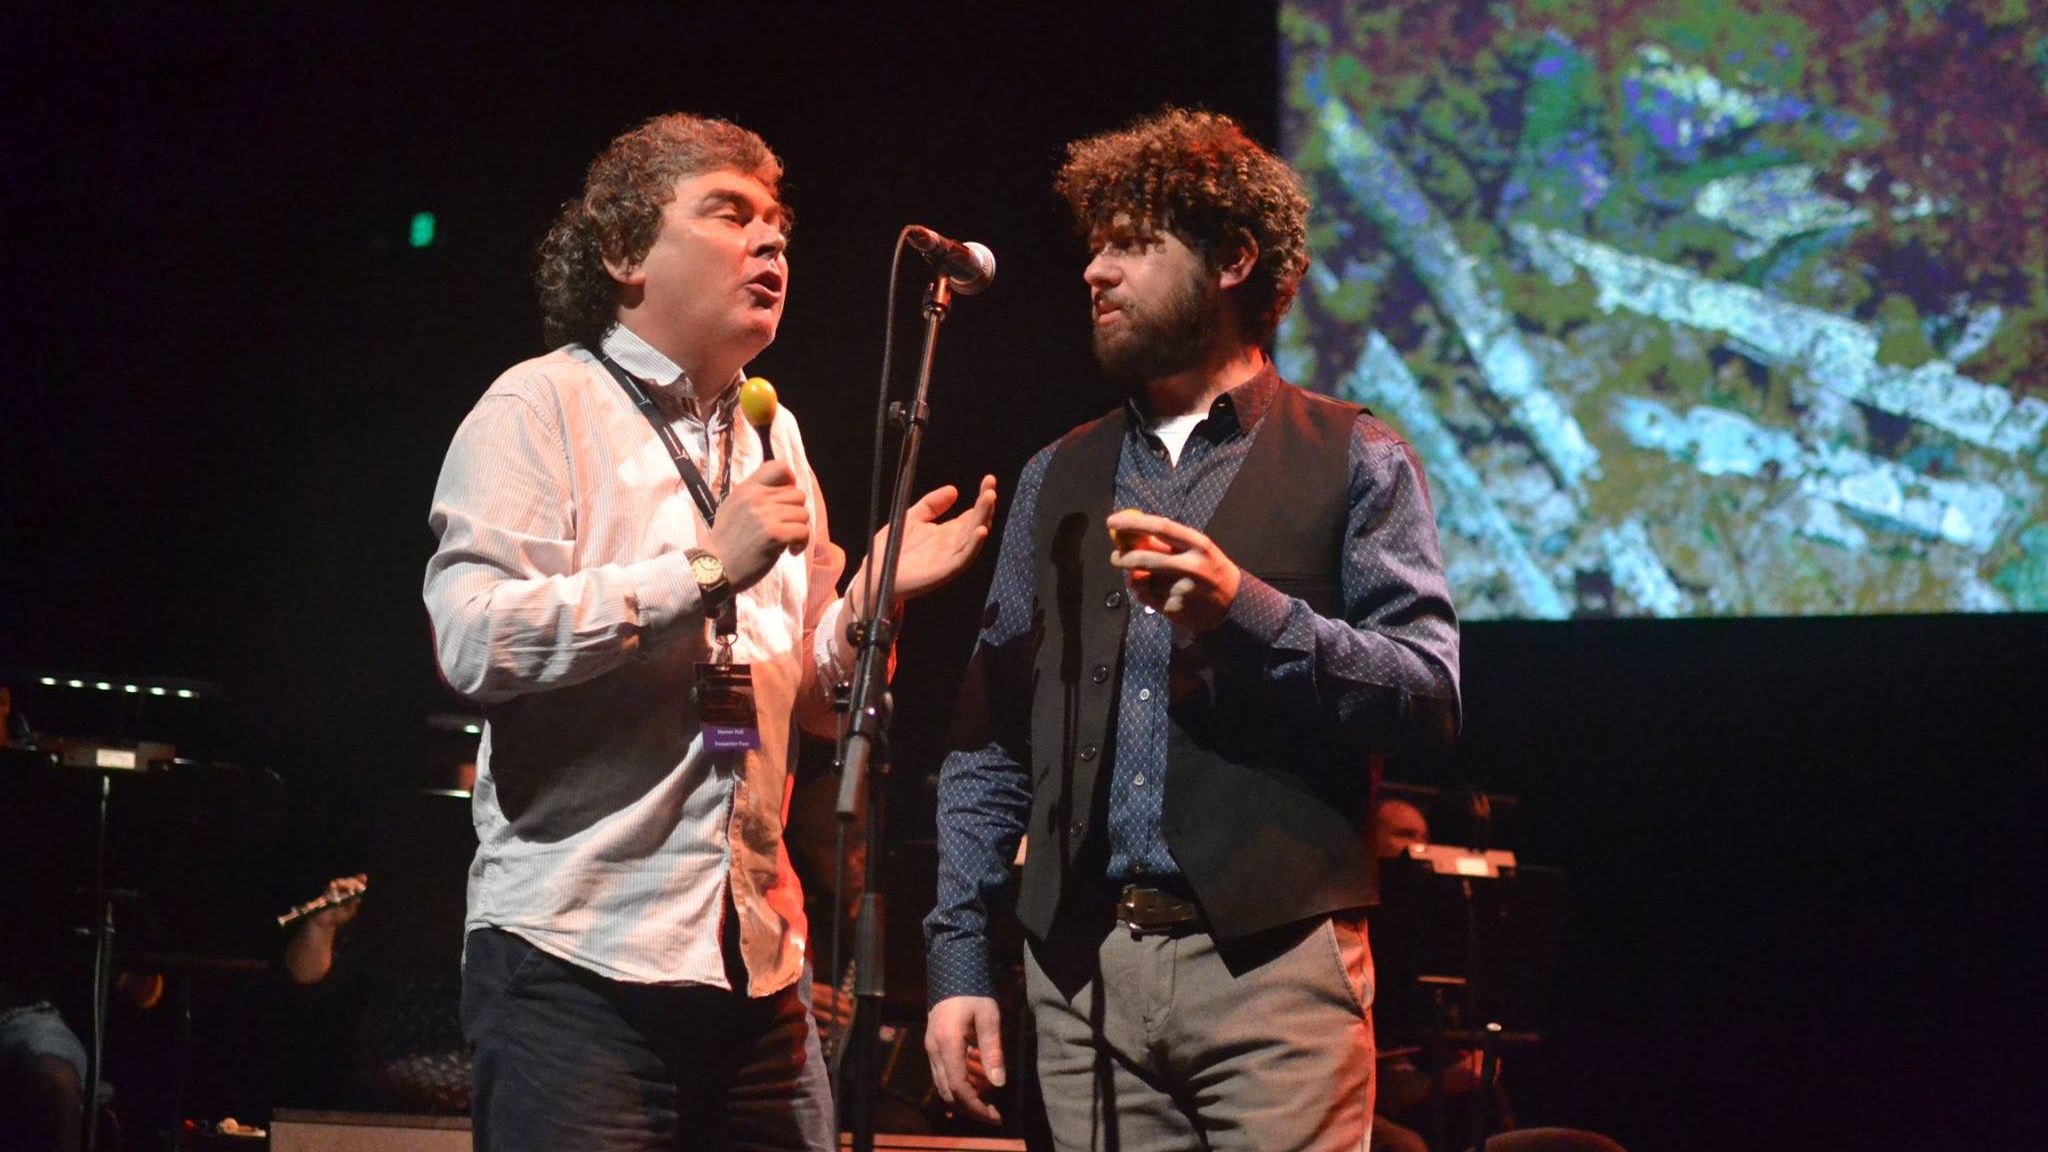 John Spillane and Declan O'Rourke, Exile Concert, Melbourne, February 2016. Photograph by Tim Chmeilewski.